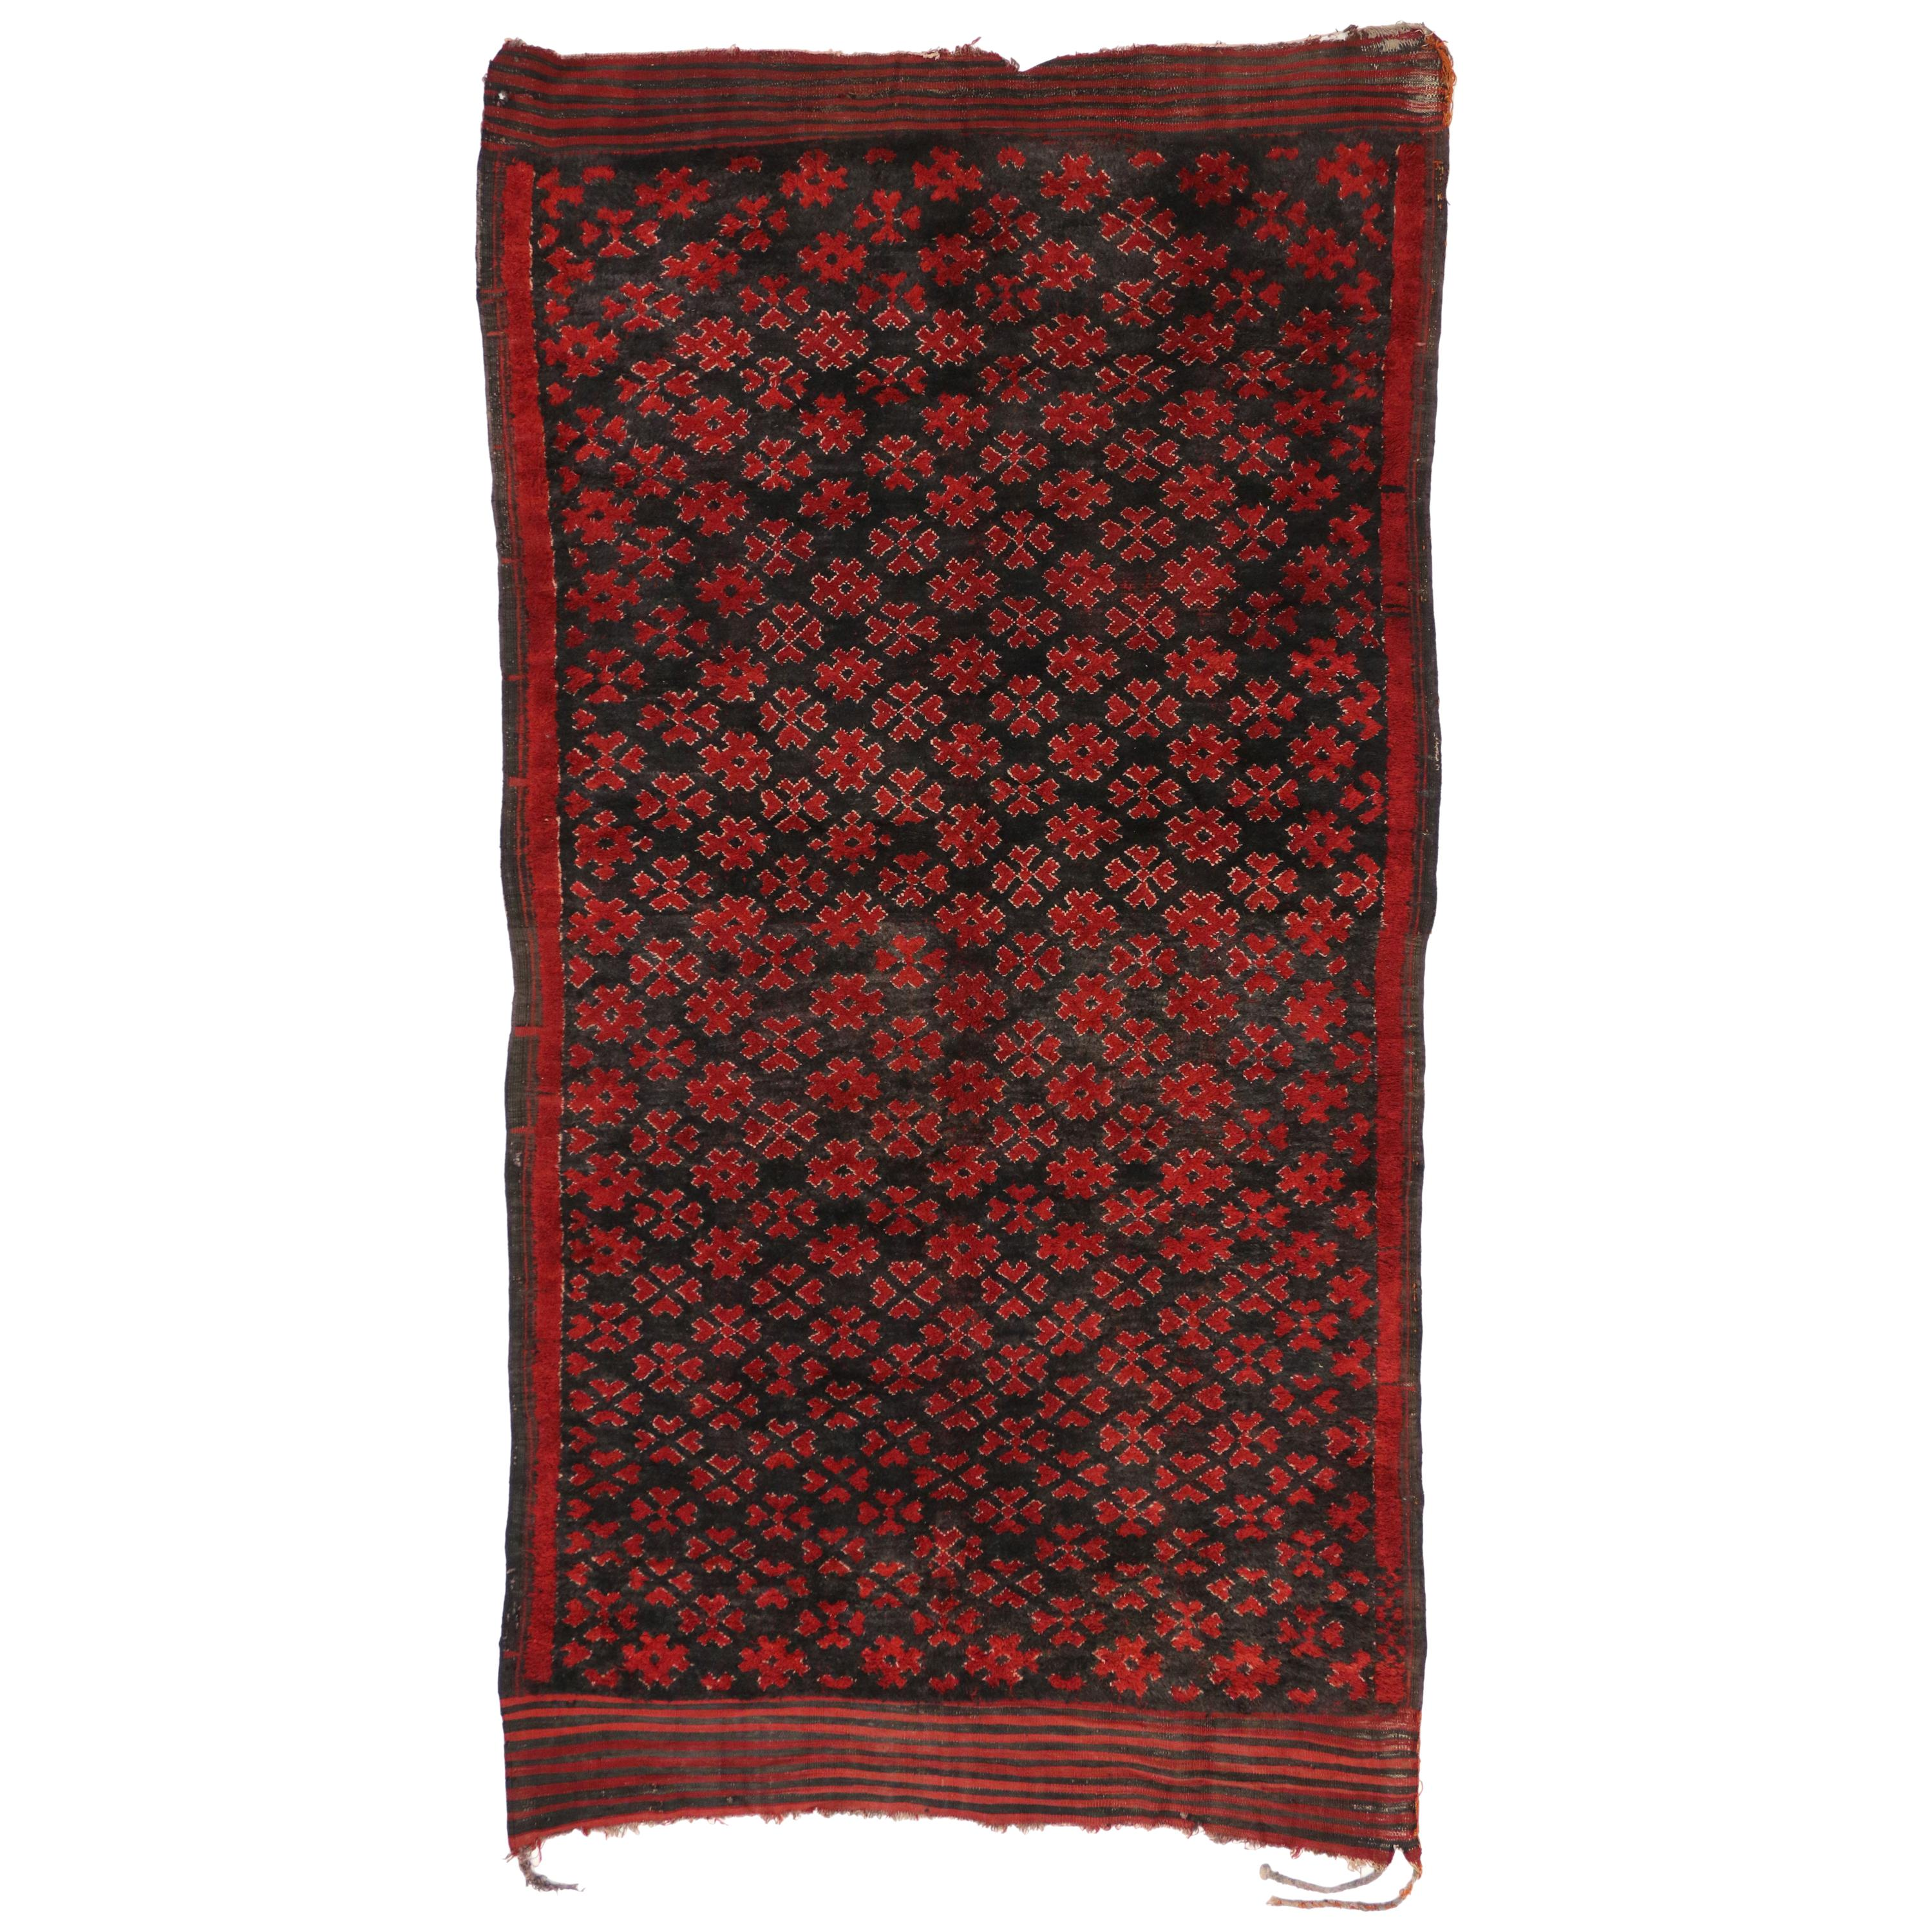 Vintage Berber Moroccan Rug with Tribal Mid-Century Modern Style